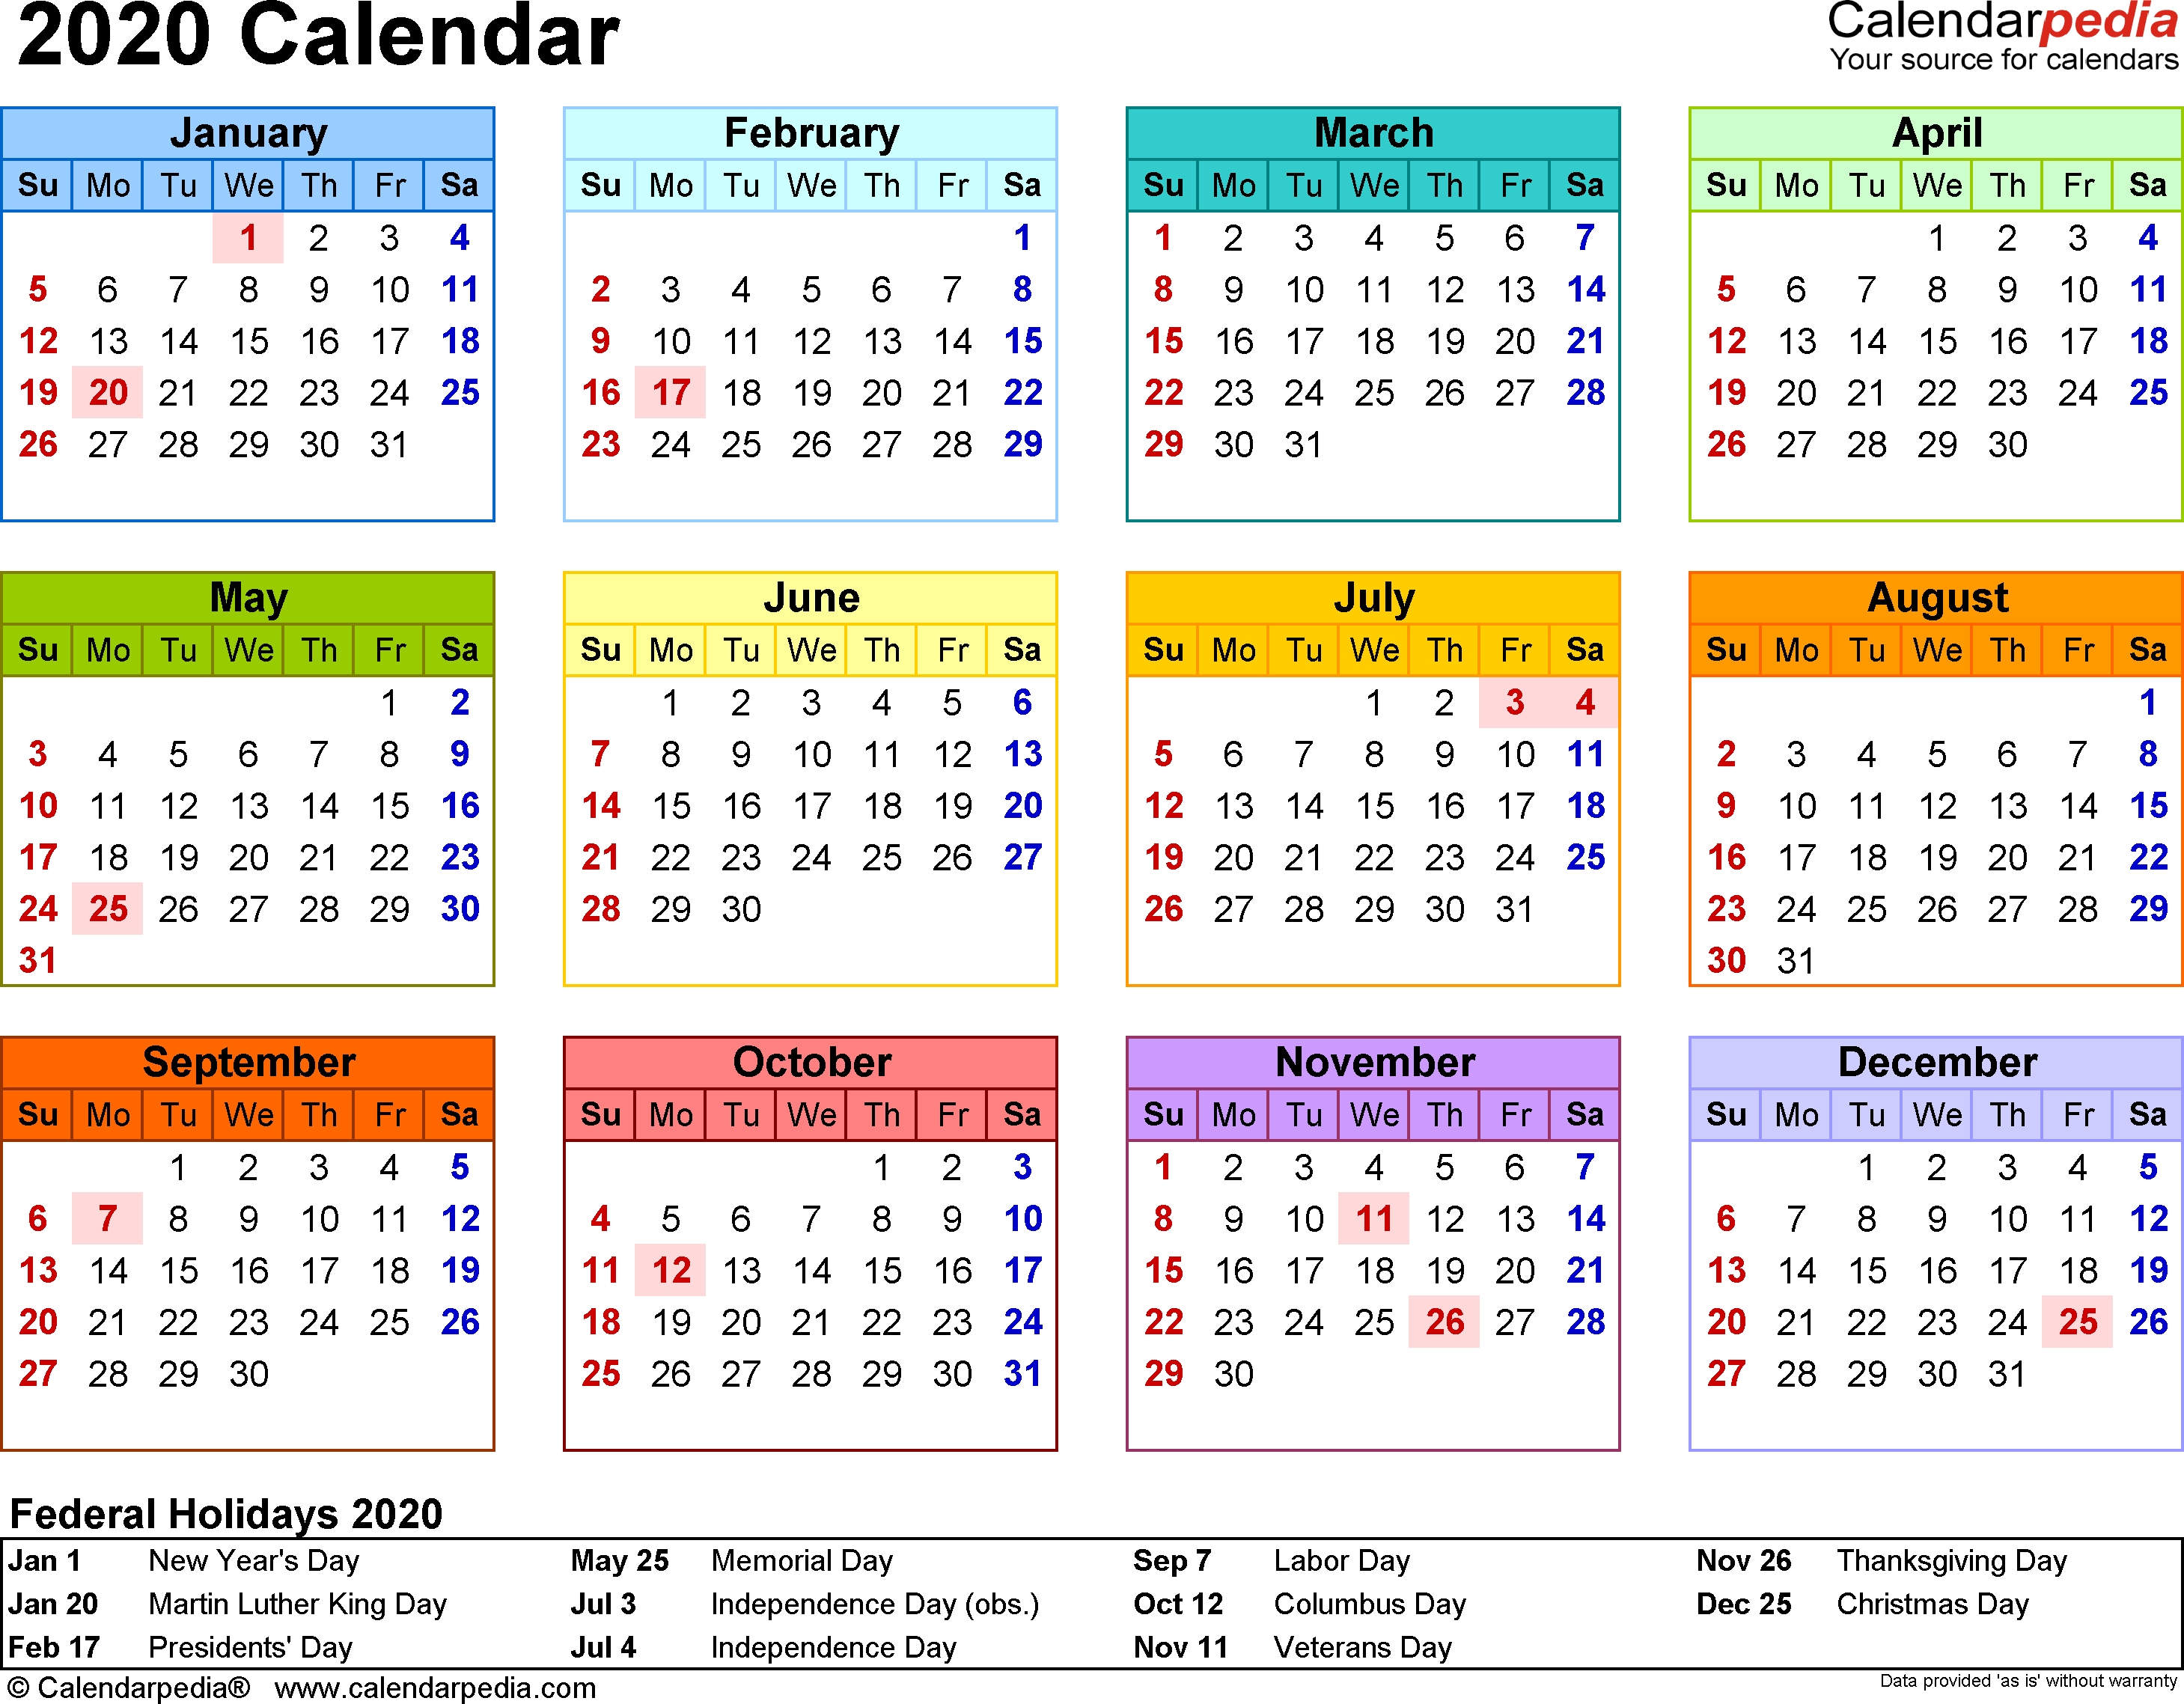 2020 Calendar - Download 17 Free Printable Excel Templates (.xlsx)_School Calendar For 2020 South Africa